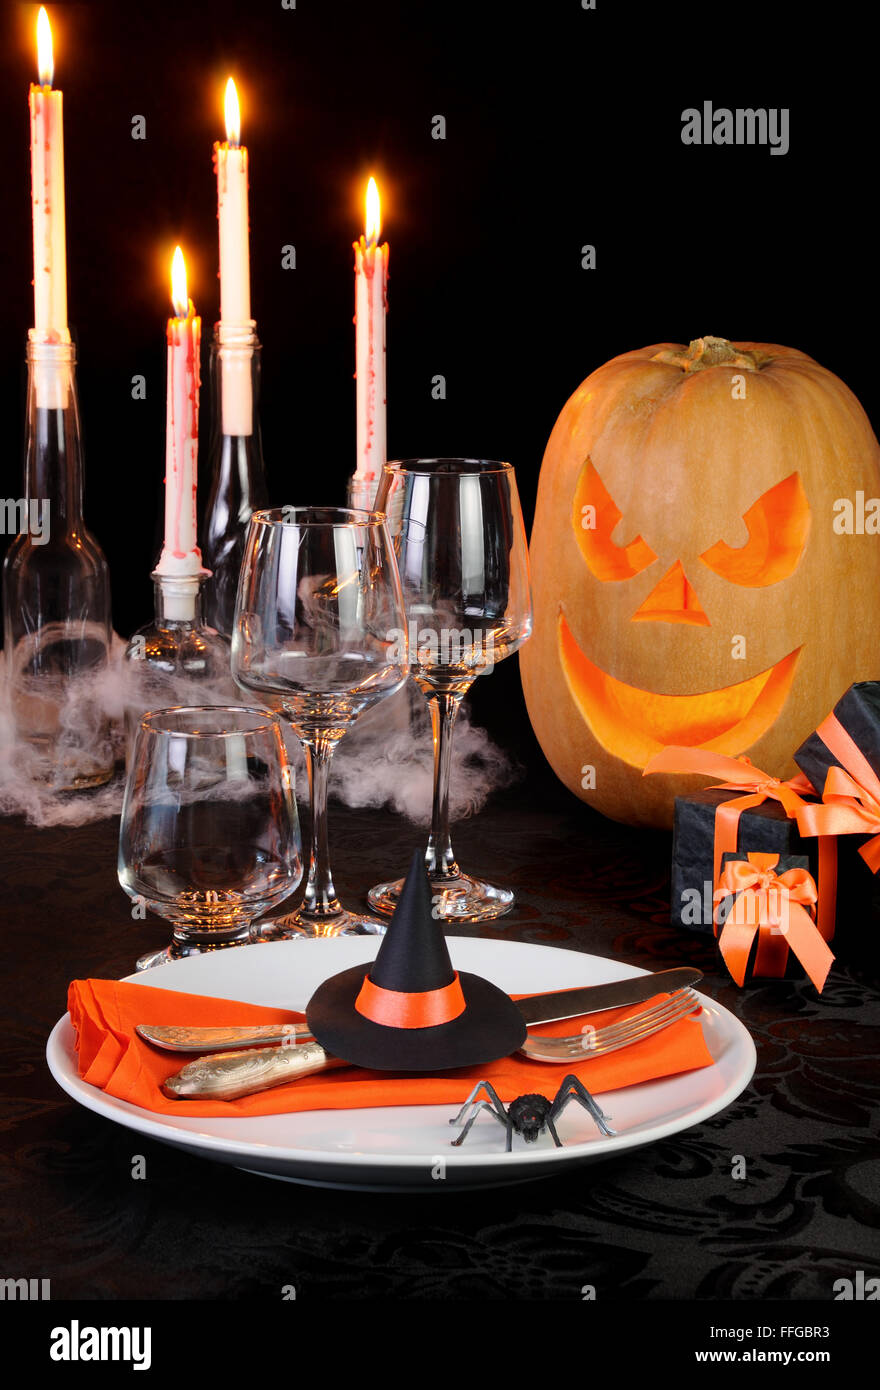 Witchu0027s Hat As A Decor Element Halloween Table Setting